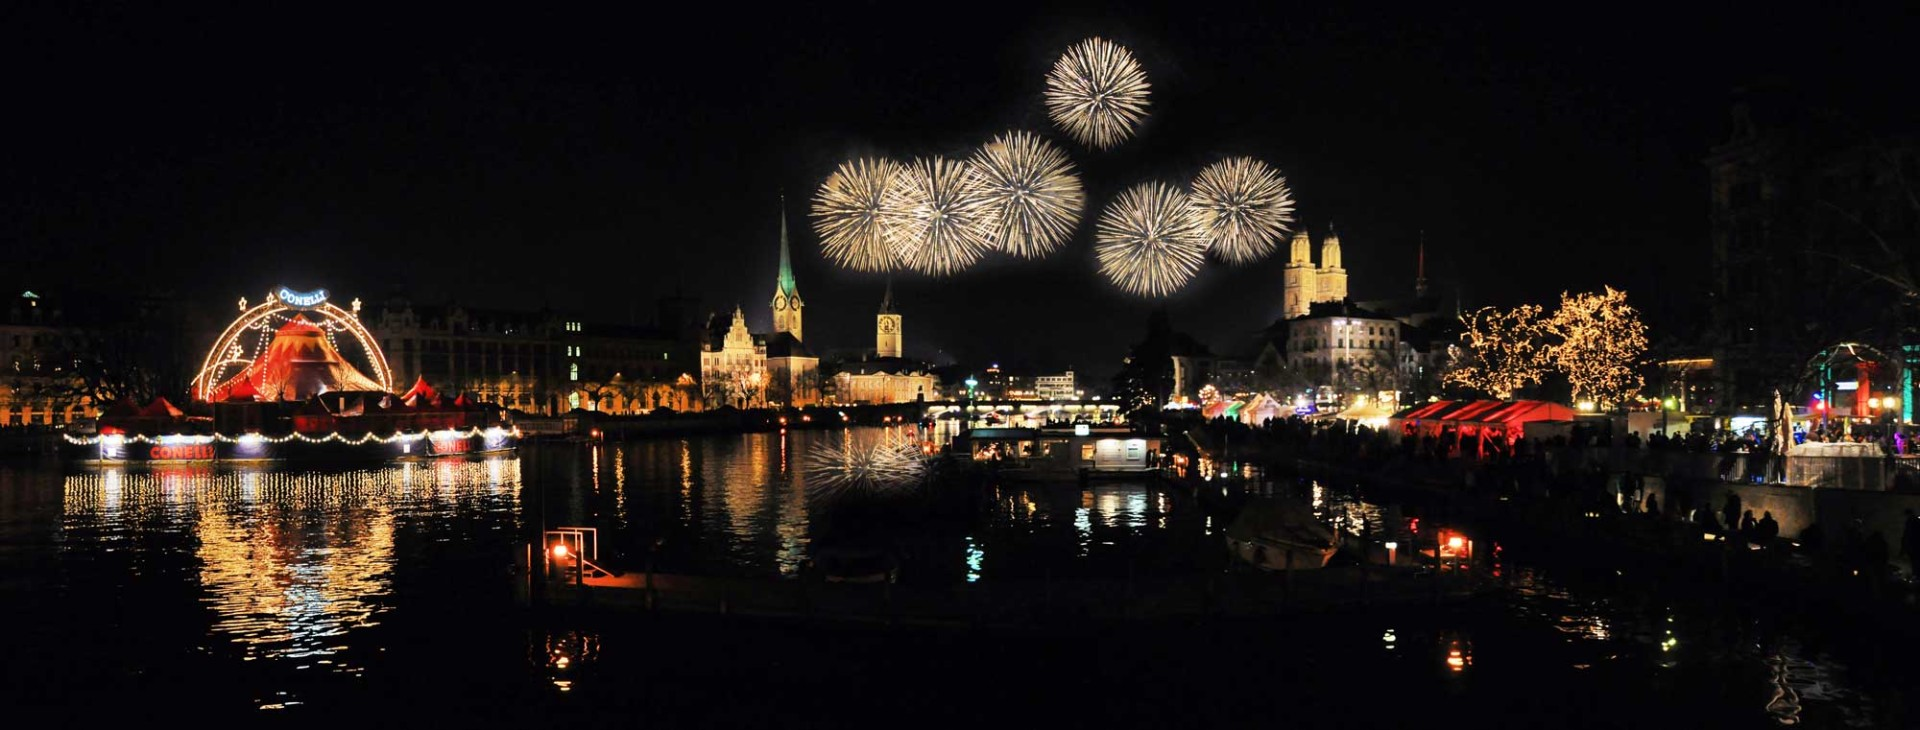 Happy new year in Zurich - Switzerland